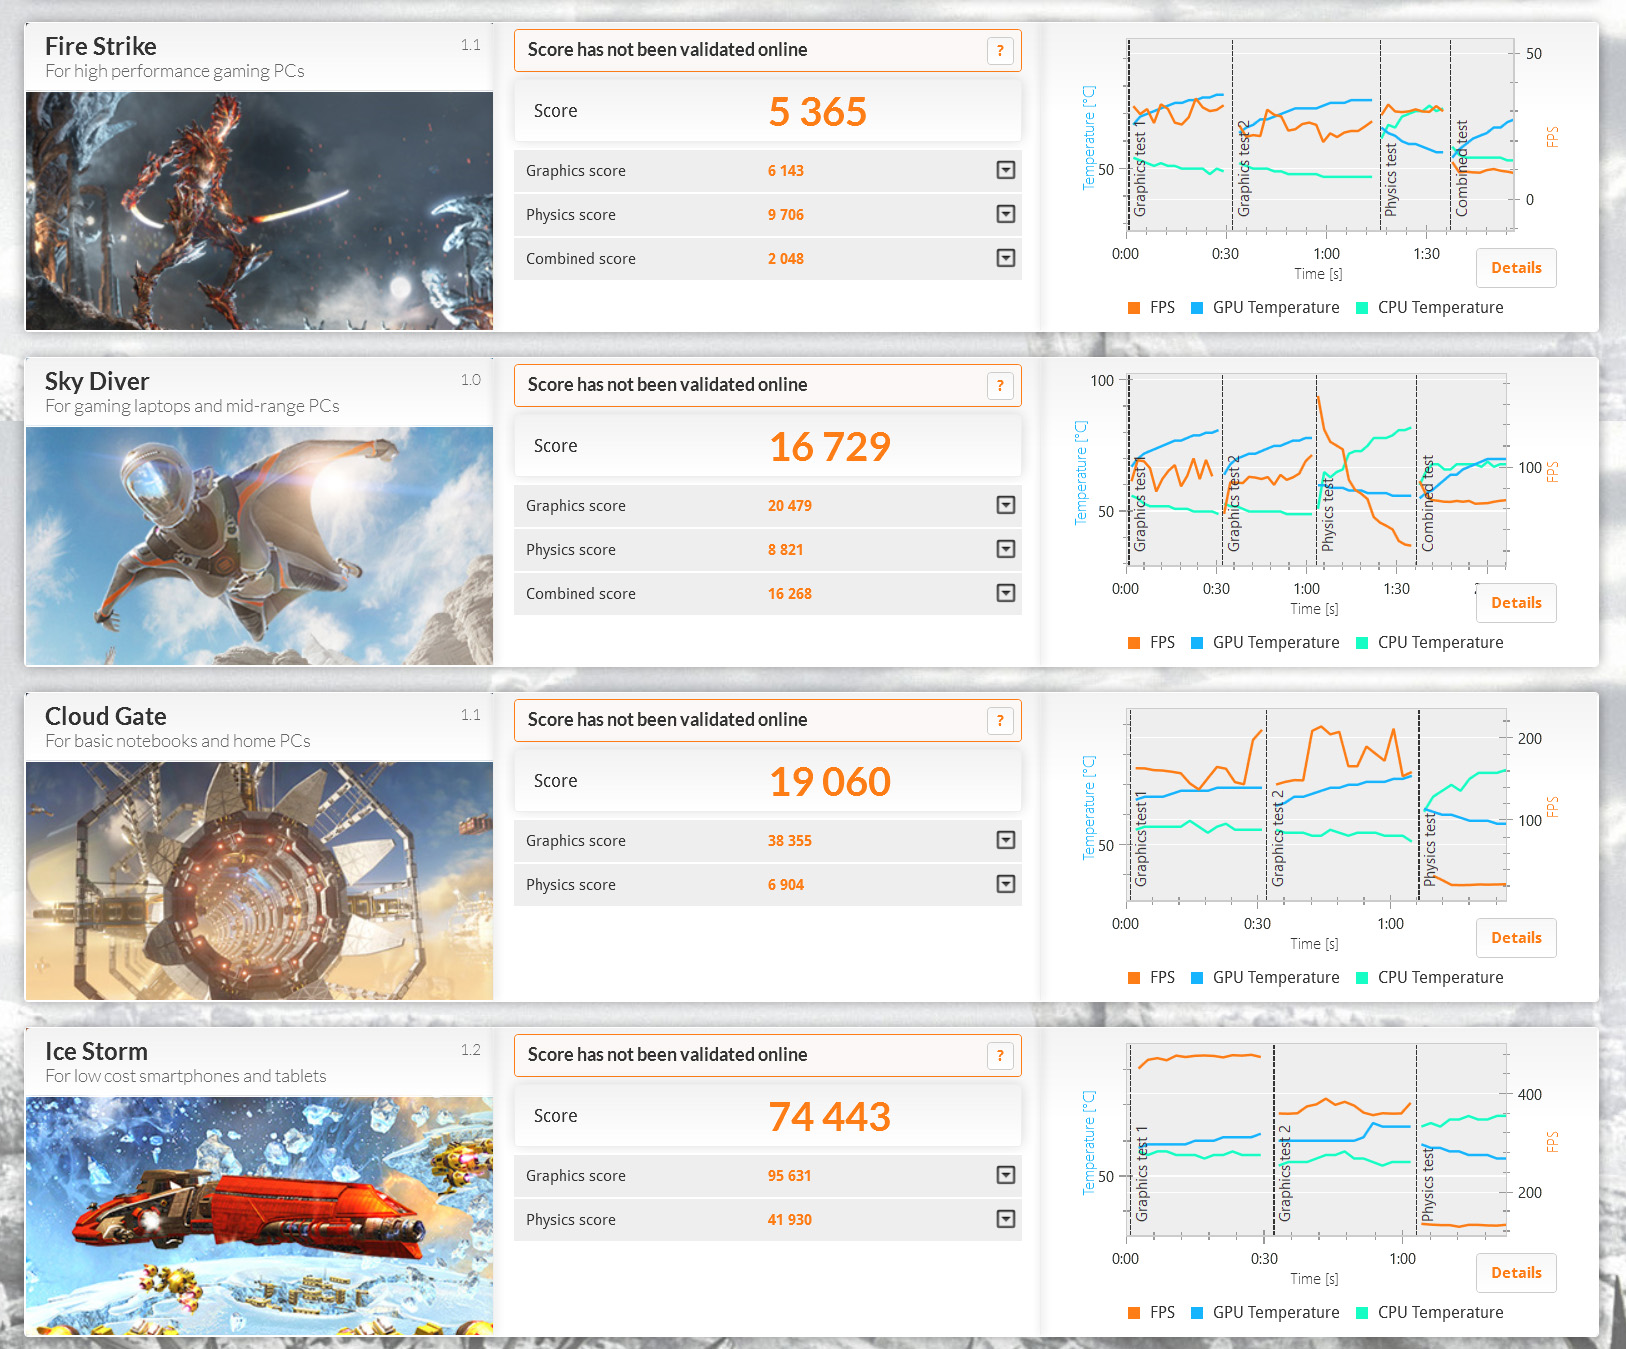 3DMark。Ice Storm 74,443、Cloud Gate 19,060、Sky Diver 16,729、Fire Strike 5,365